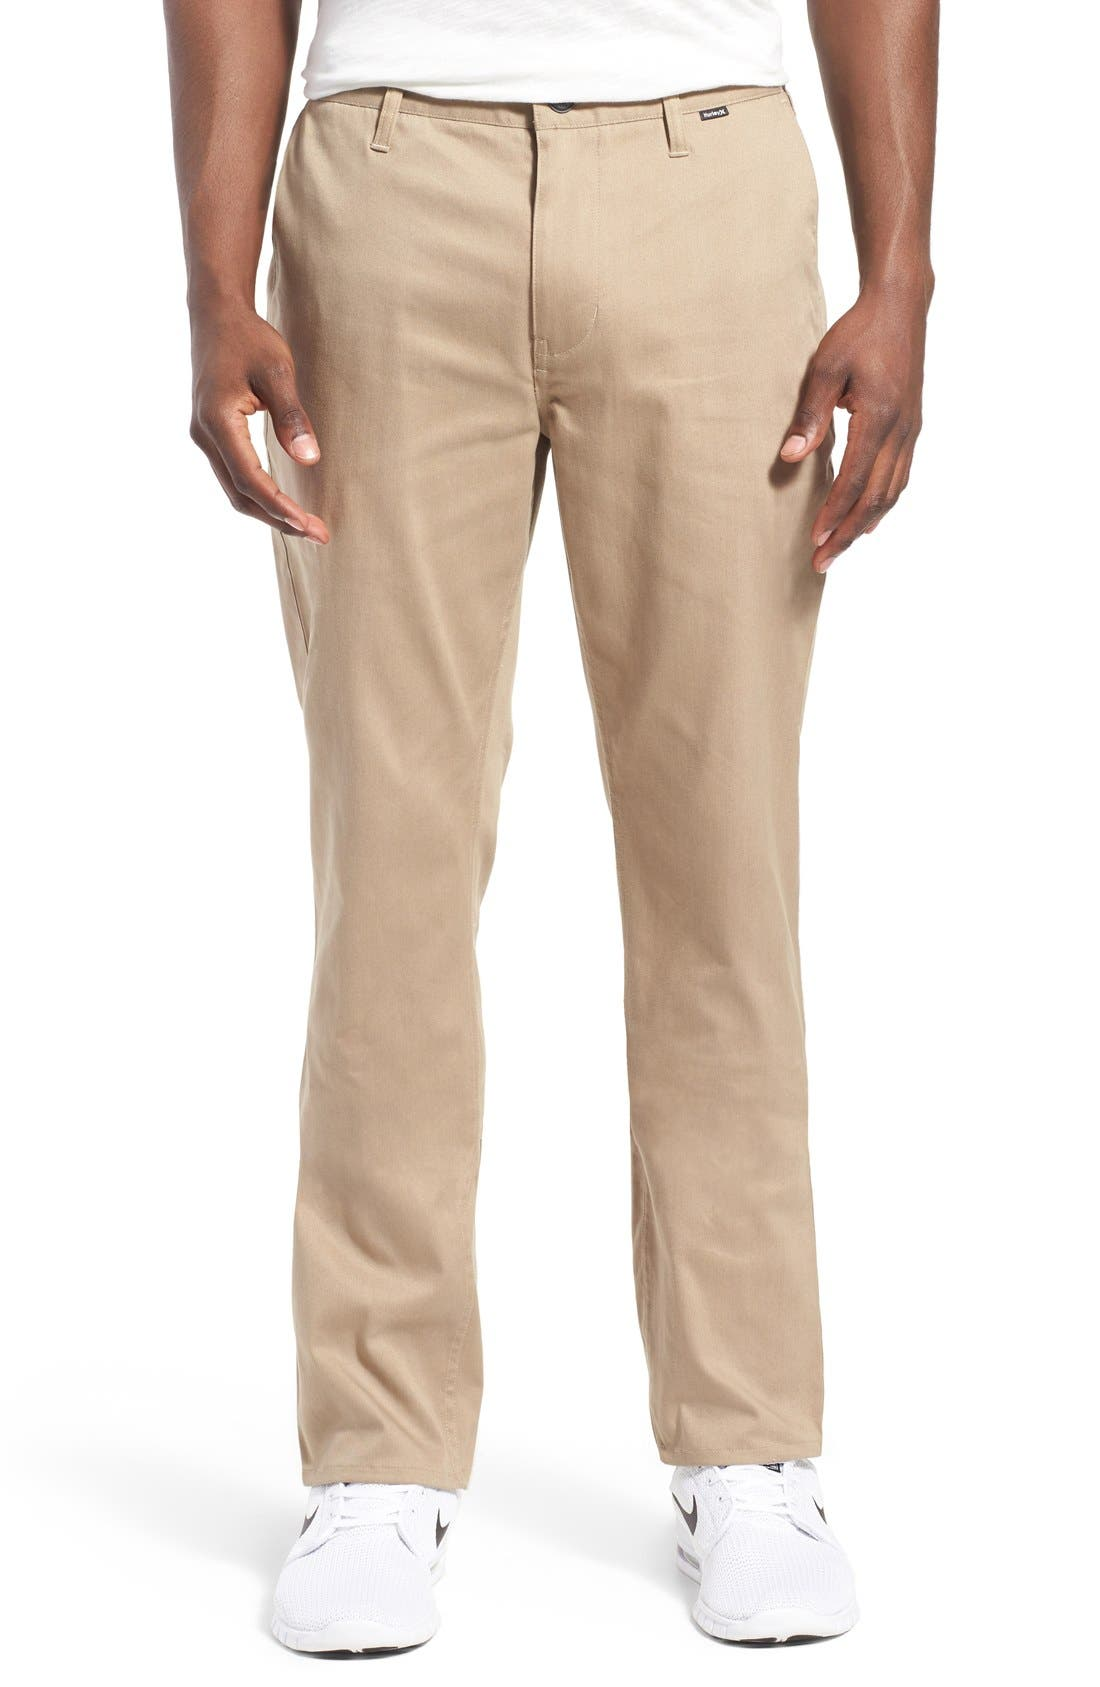 Dri-FIT Chinos,                             Main thumbnail 1, color,                             Beige